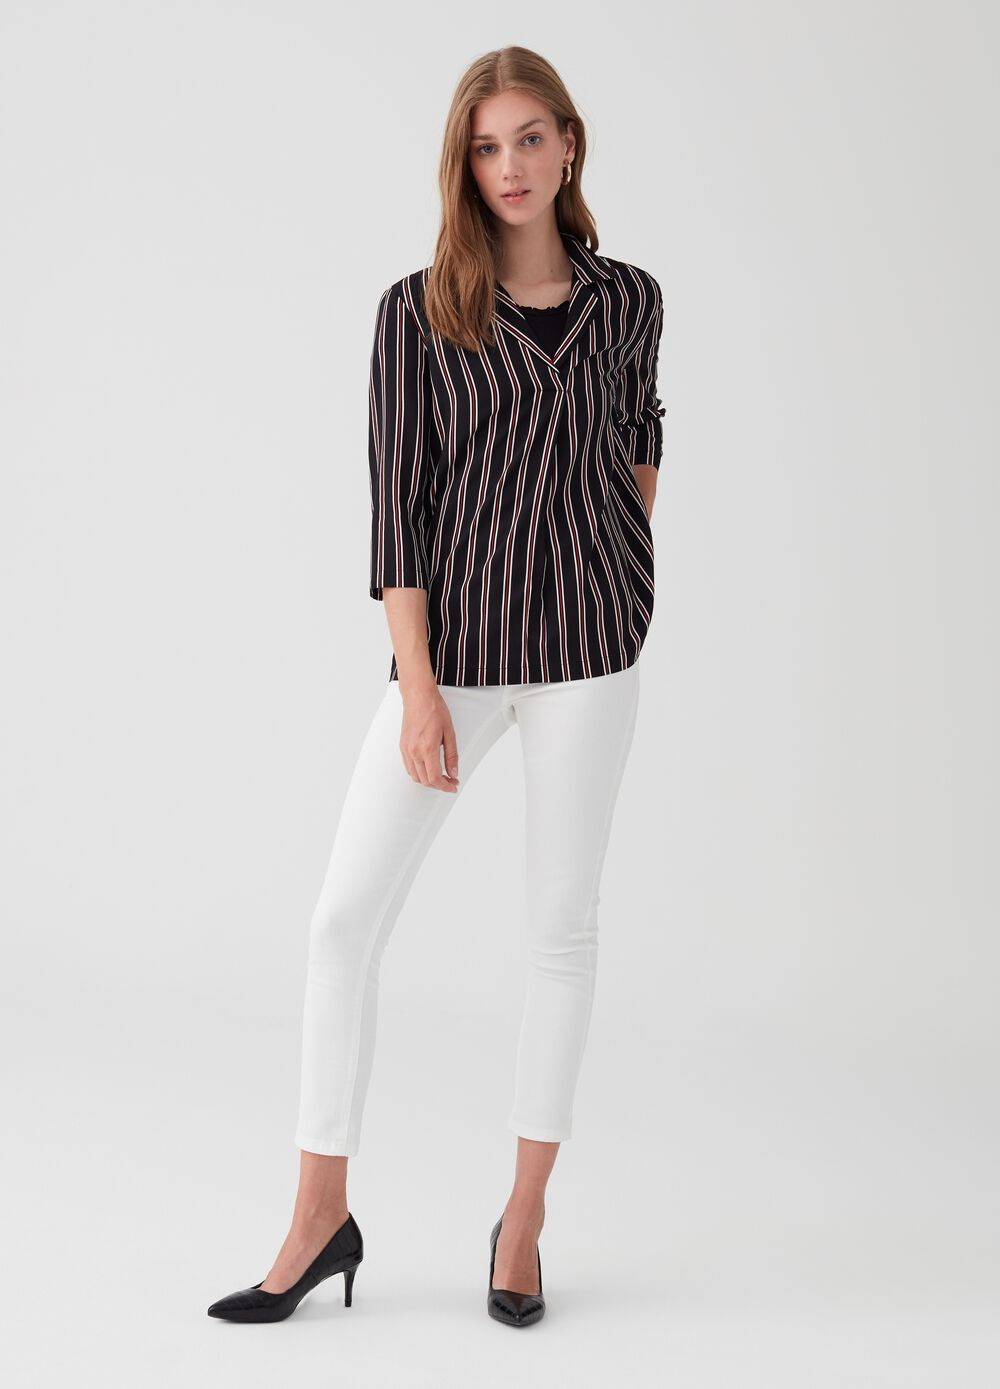 V neck blouse with three-quarter sleeves.